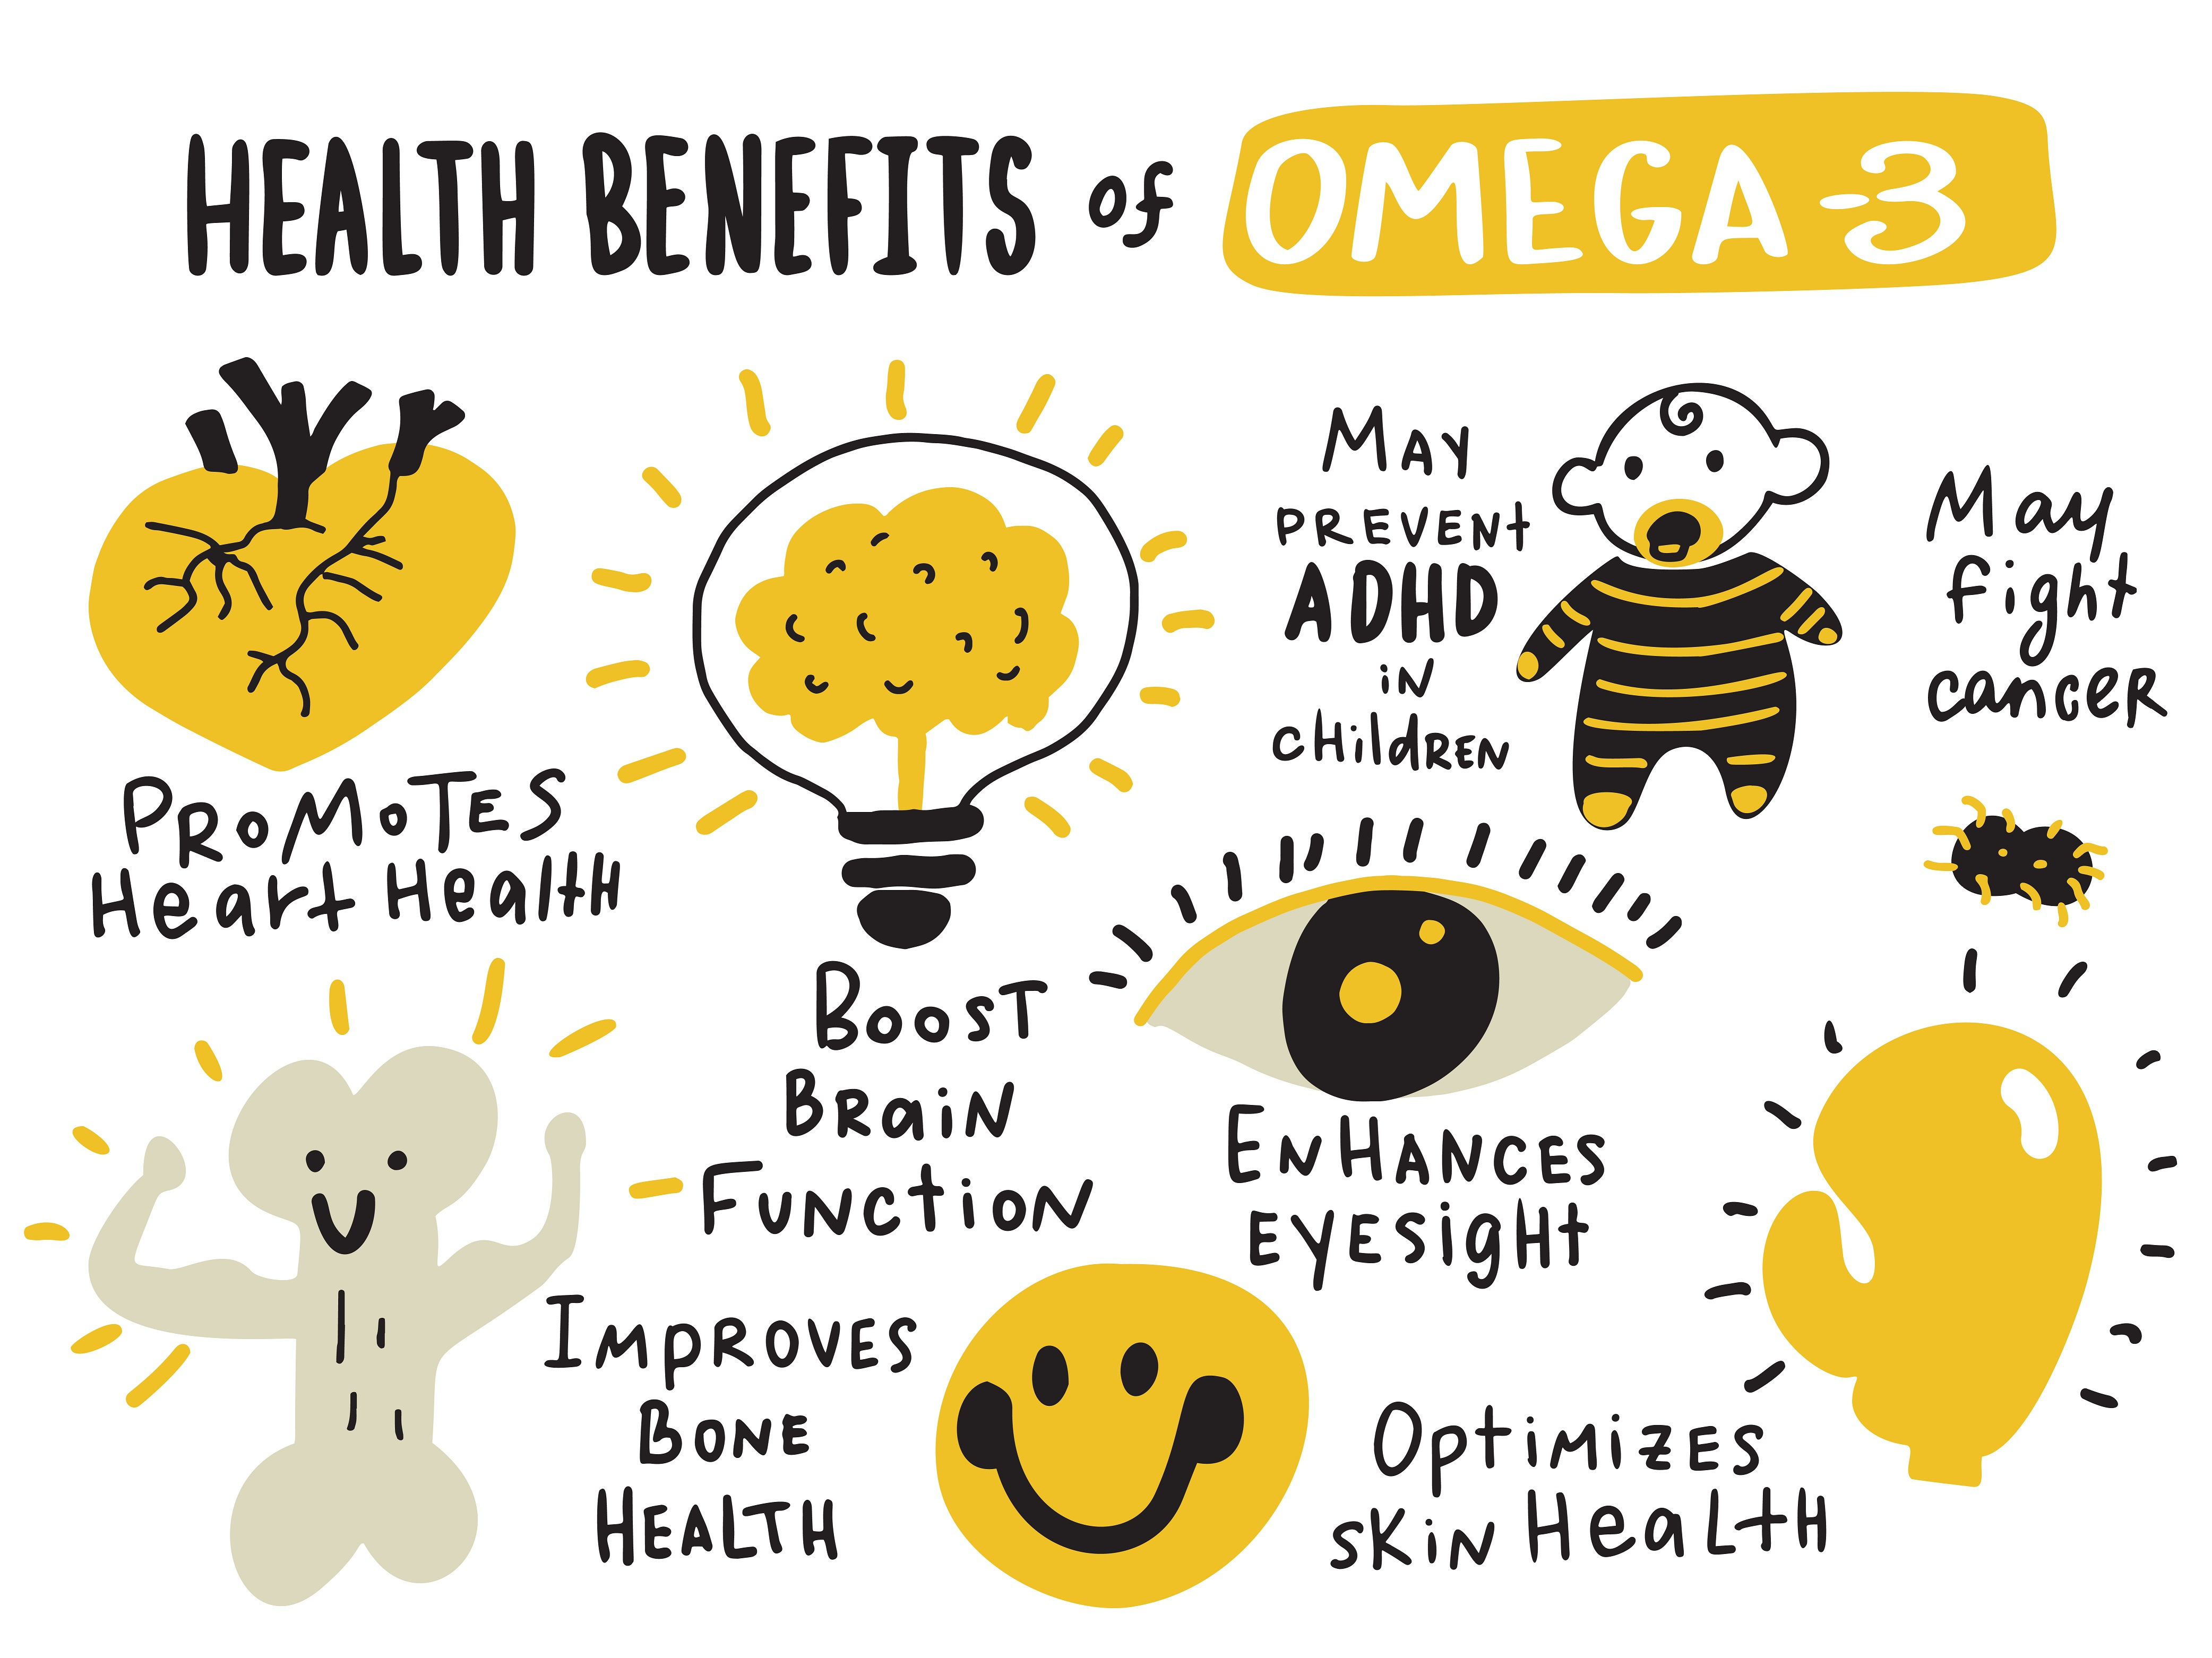 The most important omega 3 benefits